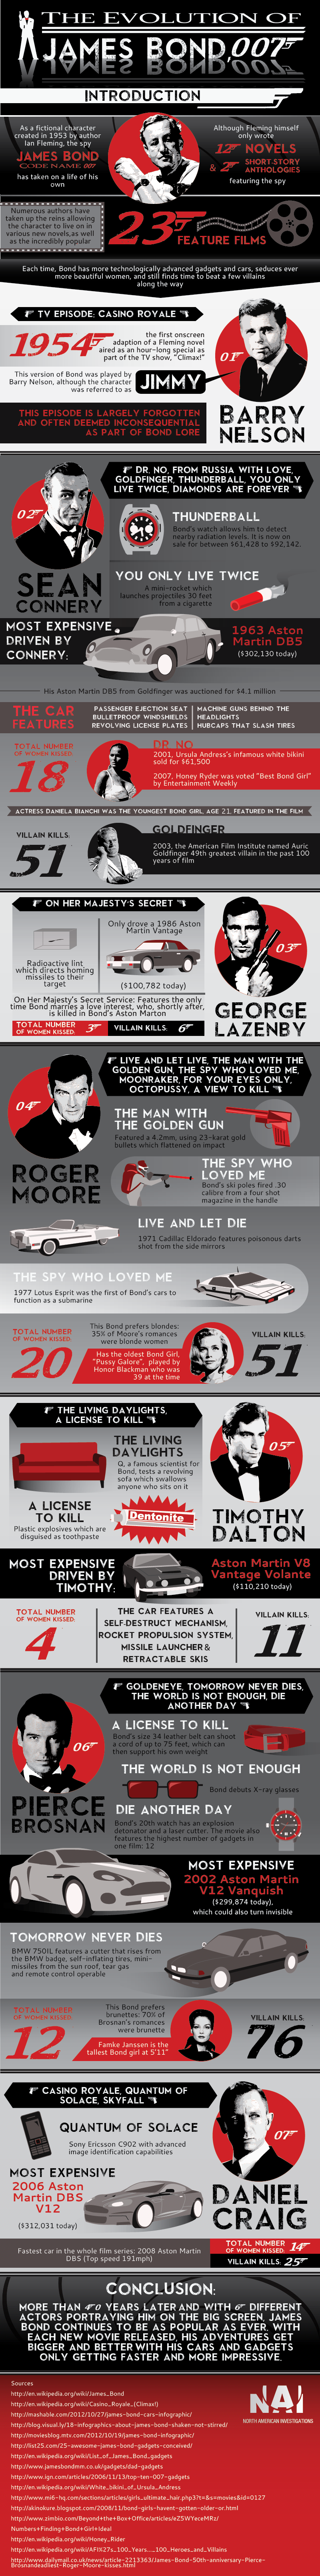 06 the-evolution-of-james-bond-007-infographic-2